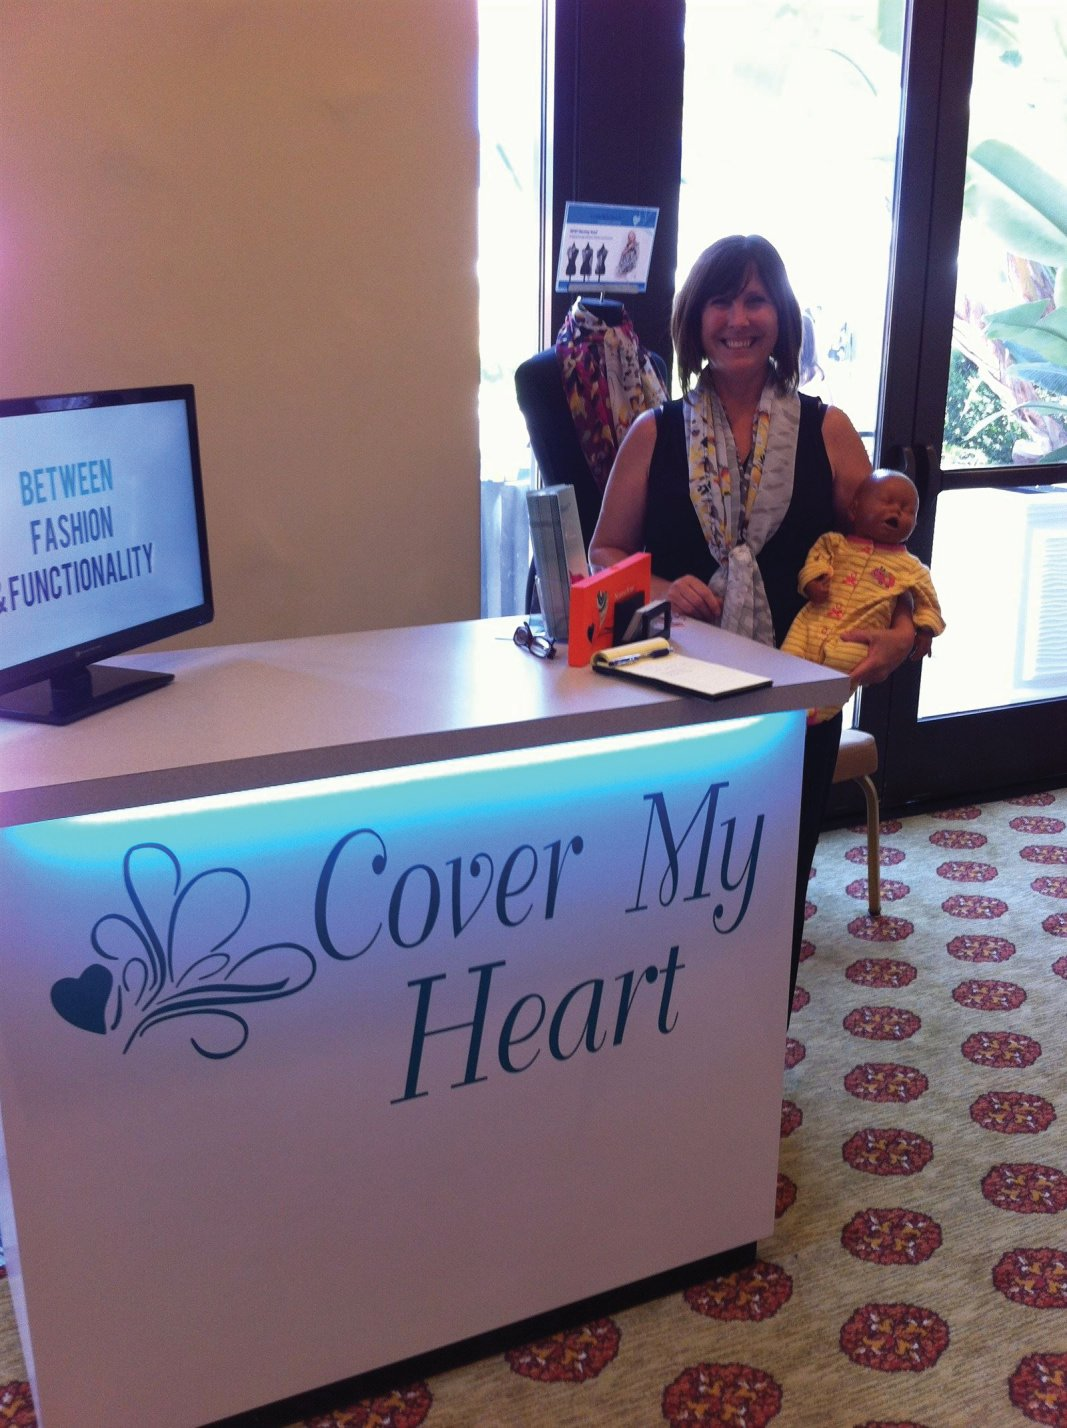 Sweet Pea Births meets April Marcial, creator and founder of CoverMyHeart nursing covers